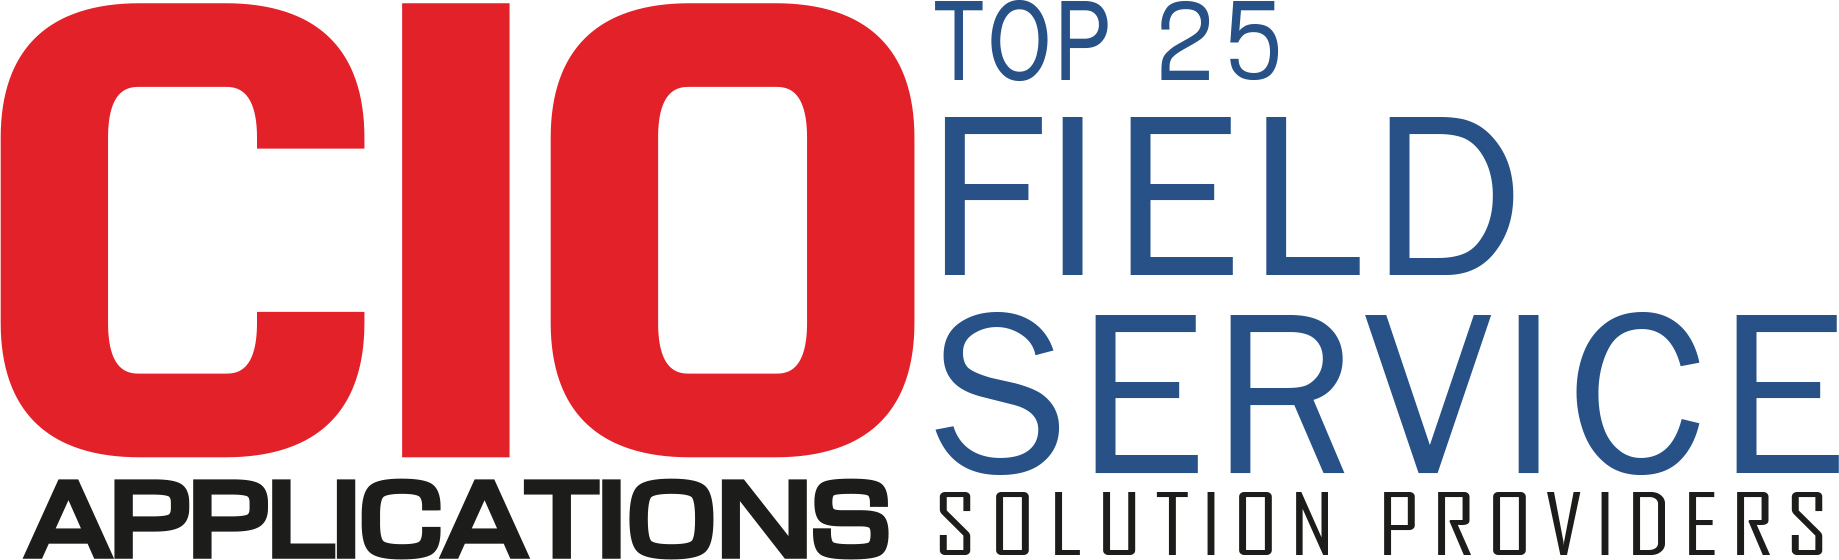 Top 25 Field Service Solution Providers - 2018